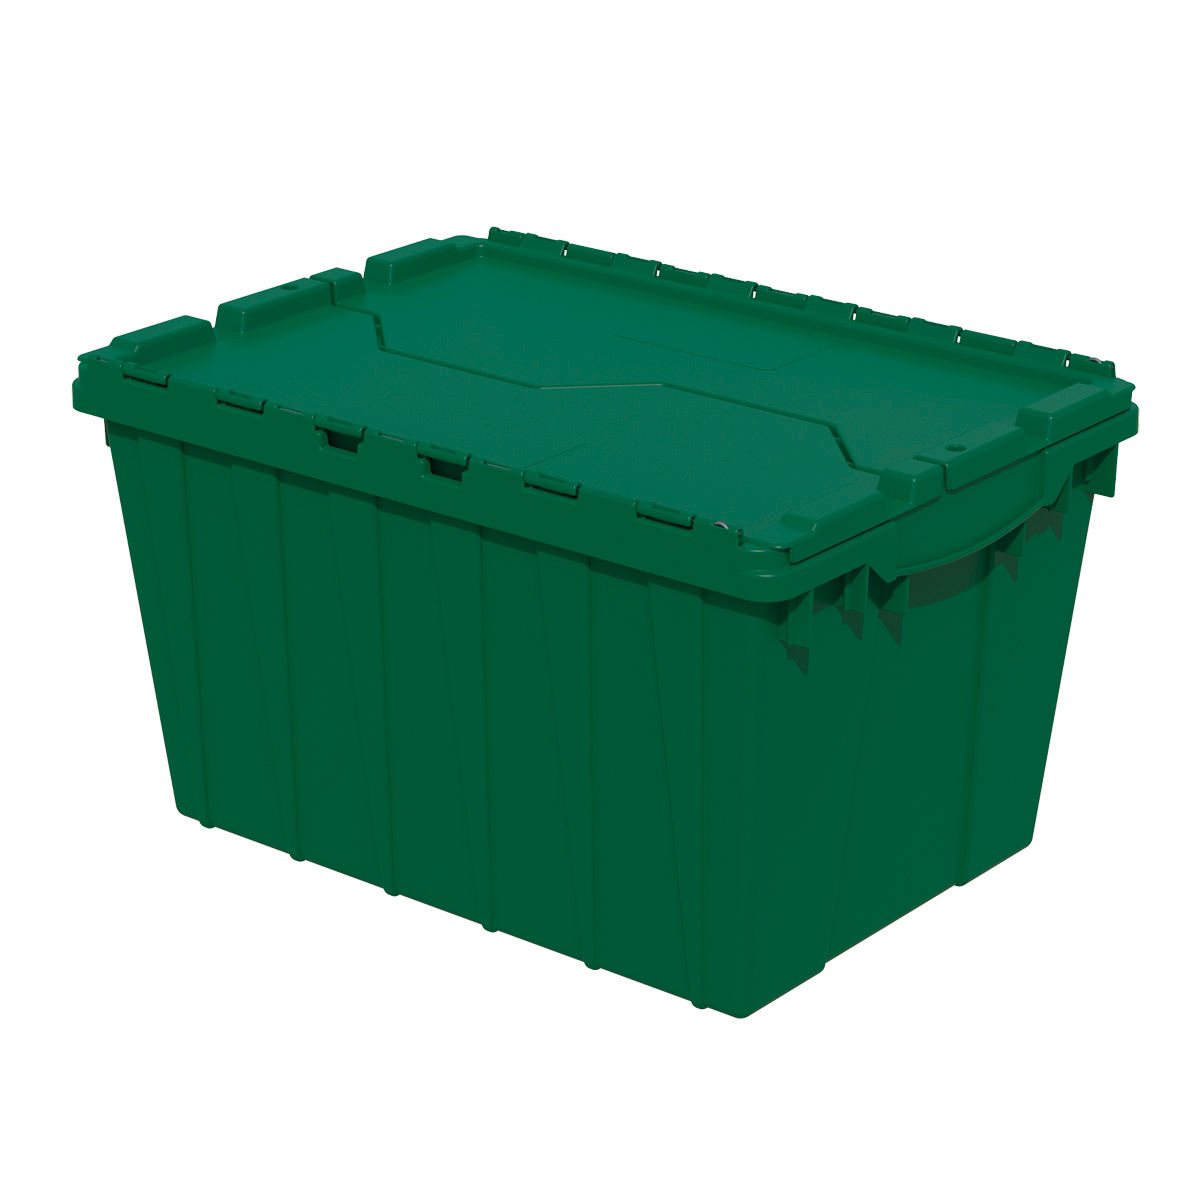 Attached Lid Container 12 gal, 21-1/2 x 15 x 12-1/2, Green (39120GRN).  This item sold in carton quantities of 6.